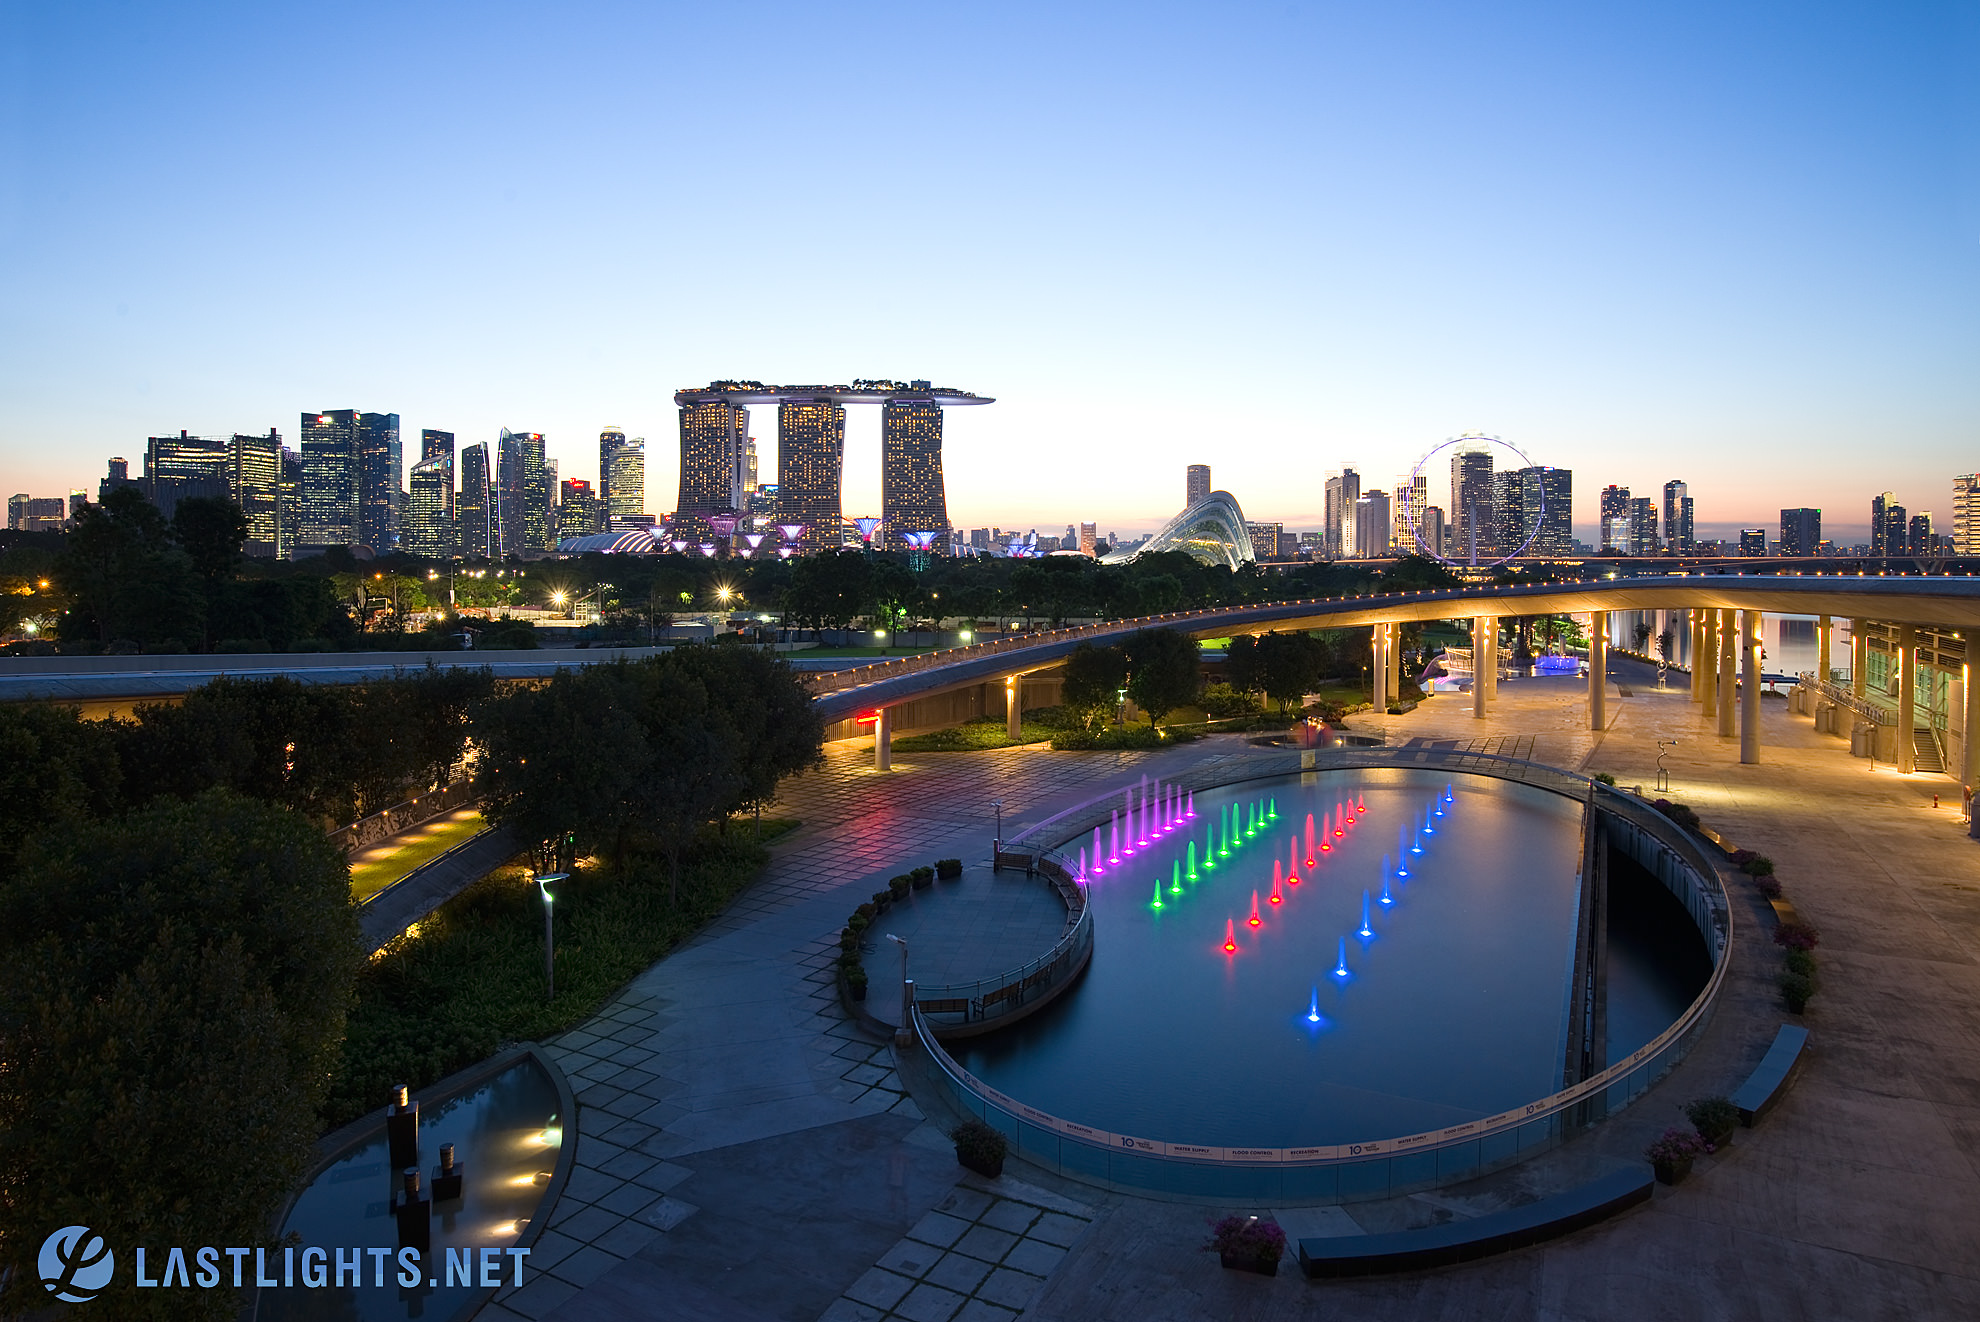 Spot 6: Shoot from Marina Barrage